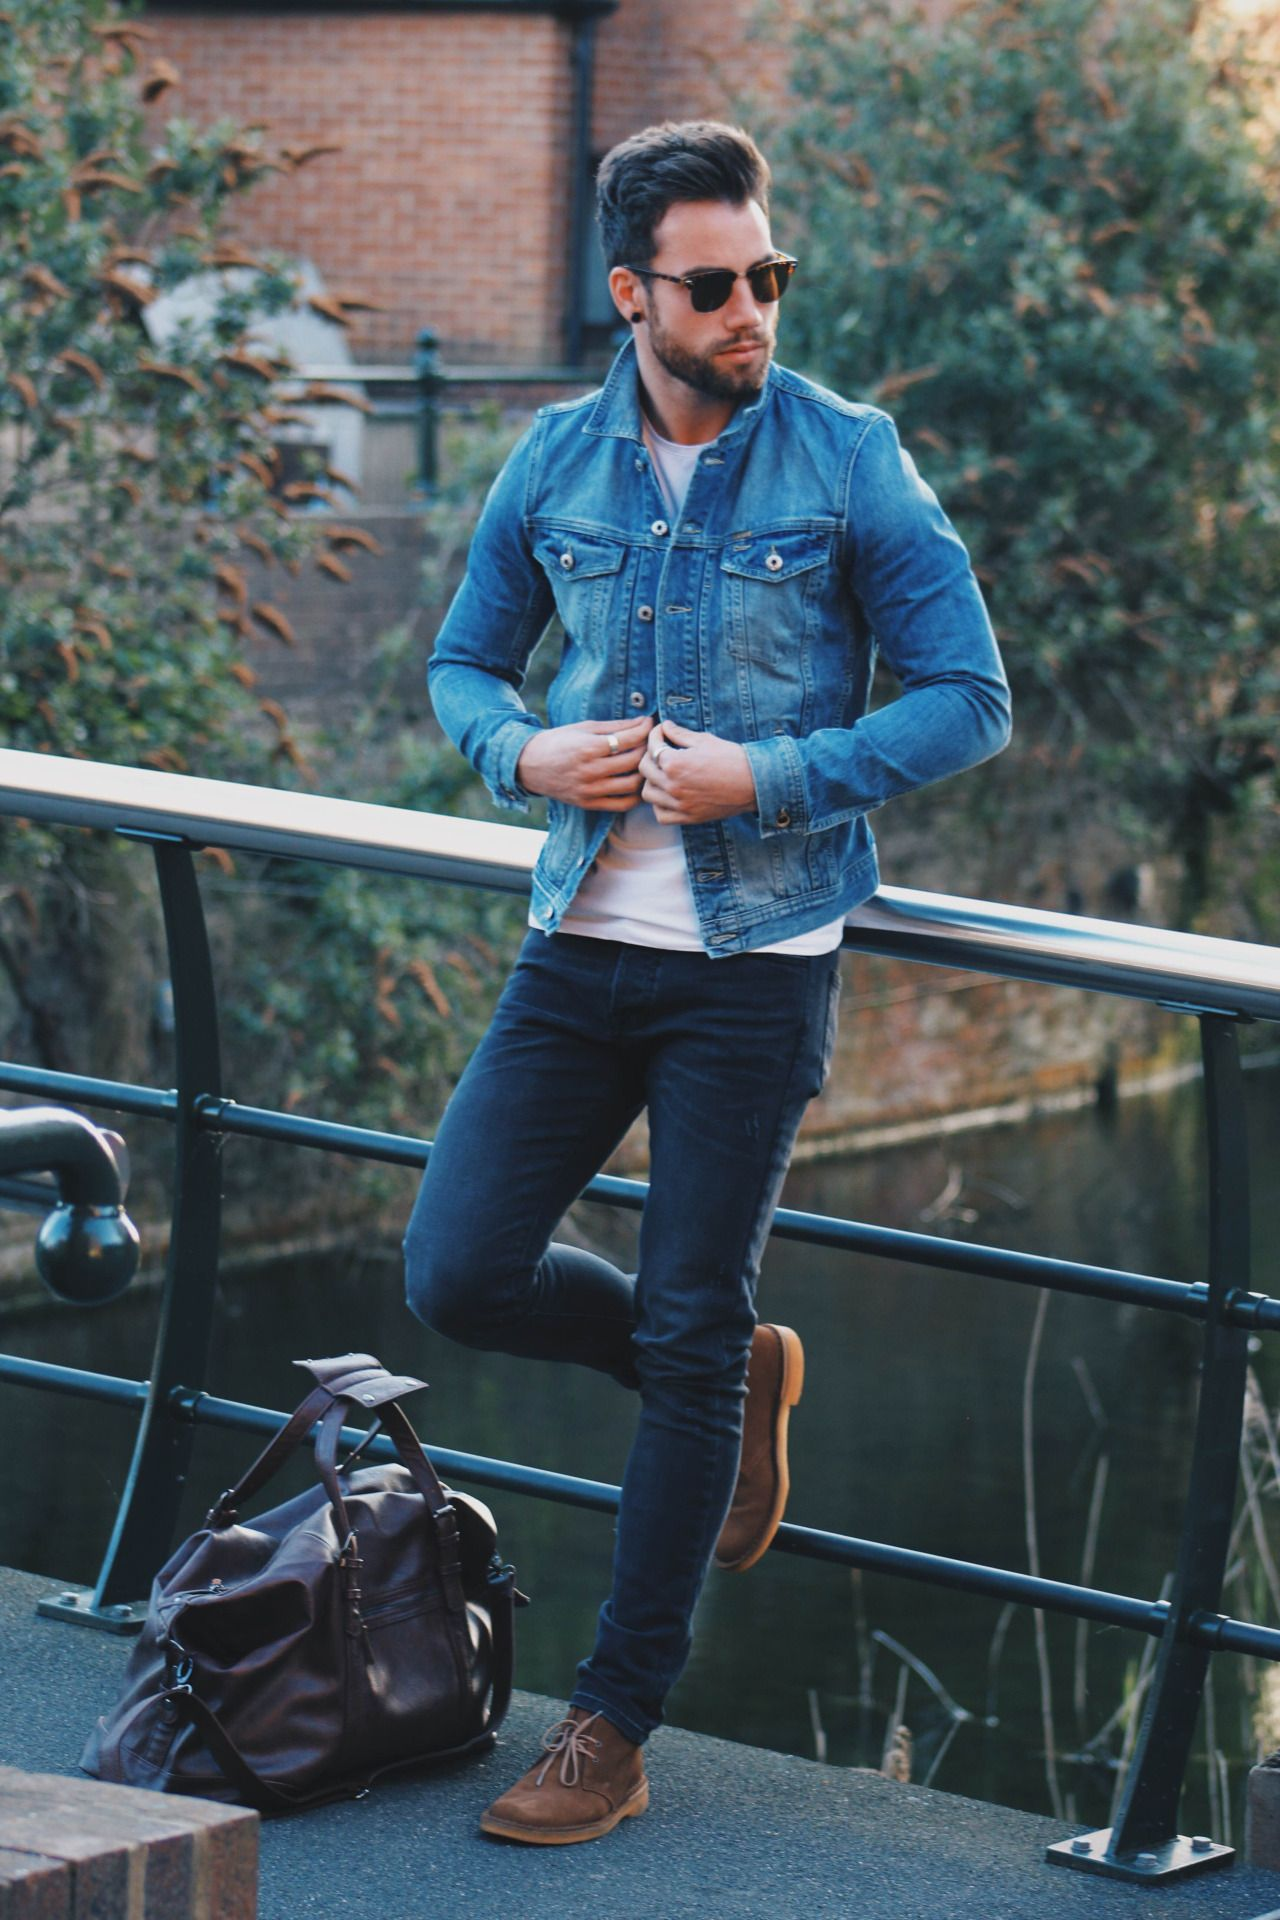 Menstylica Chezrust Menstylica Instagram Things To Wear In